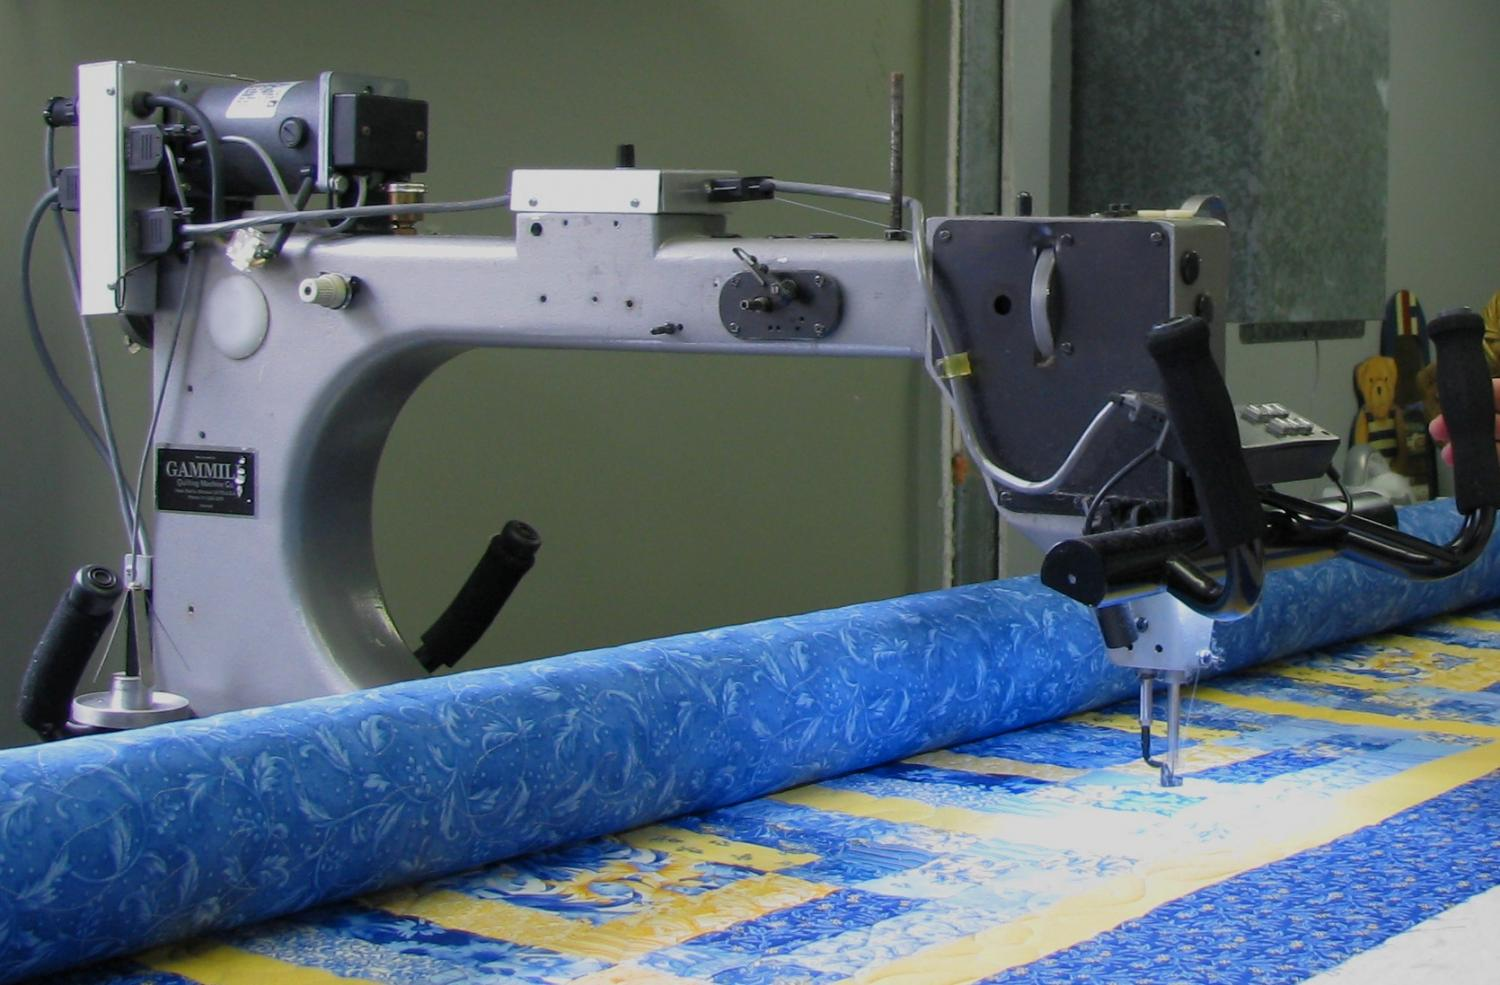 arm long machine longarm machines en hire of or quilt picture buy q quilting buybrother bernina